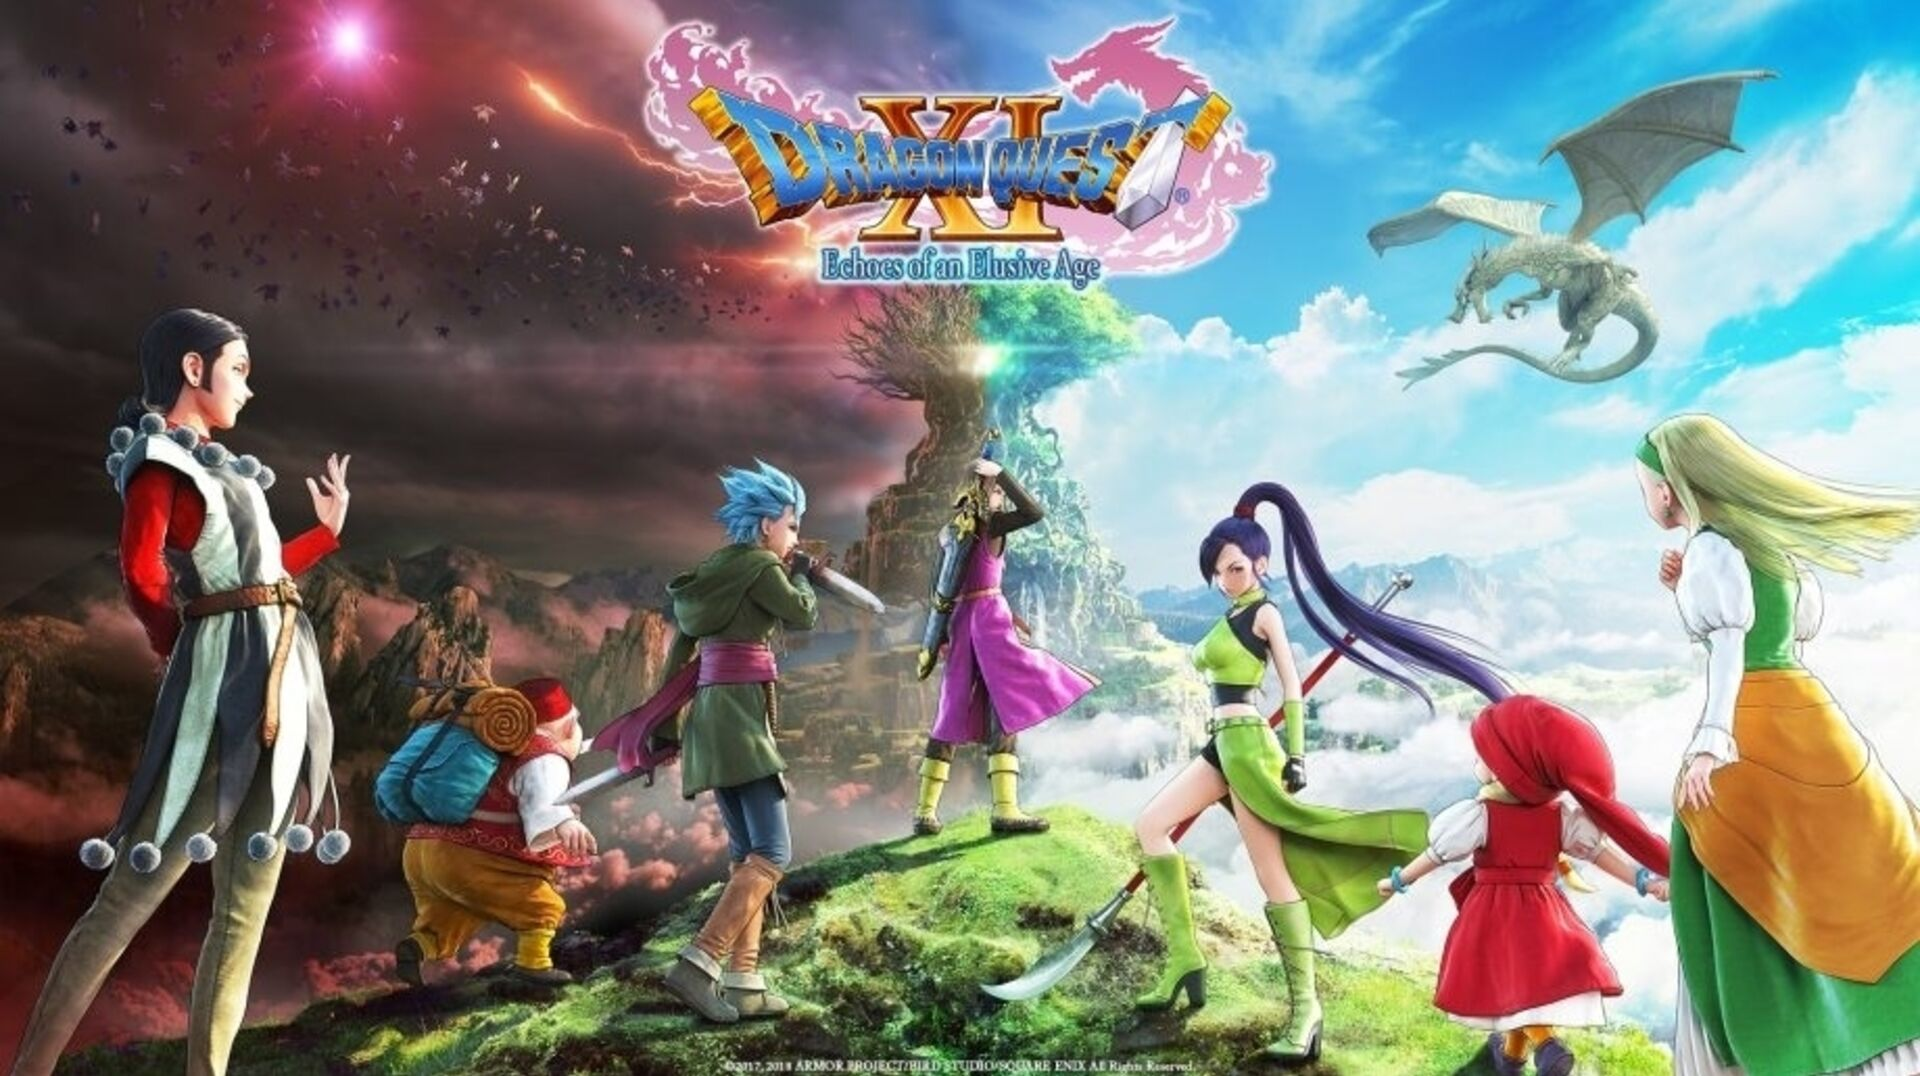 Dragon Quest 11 S: Echoes of an Elusive Age review - an epic RPG ...